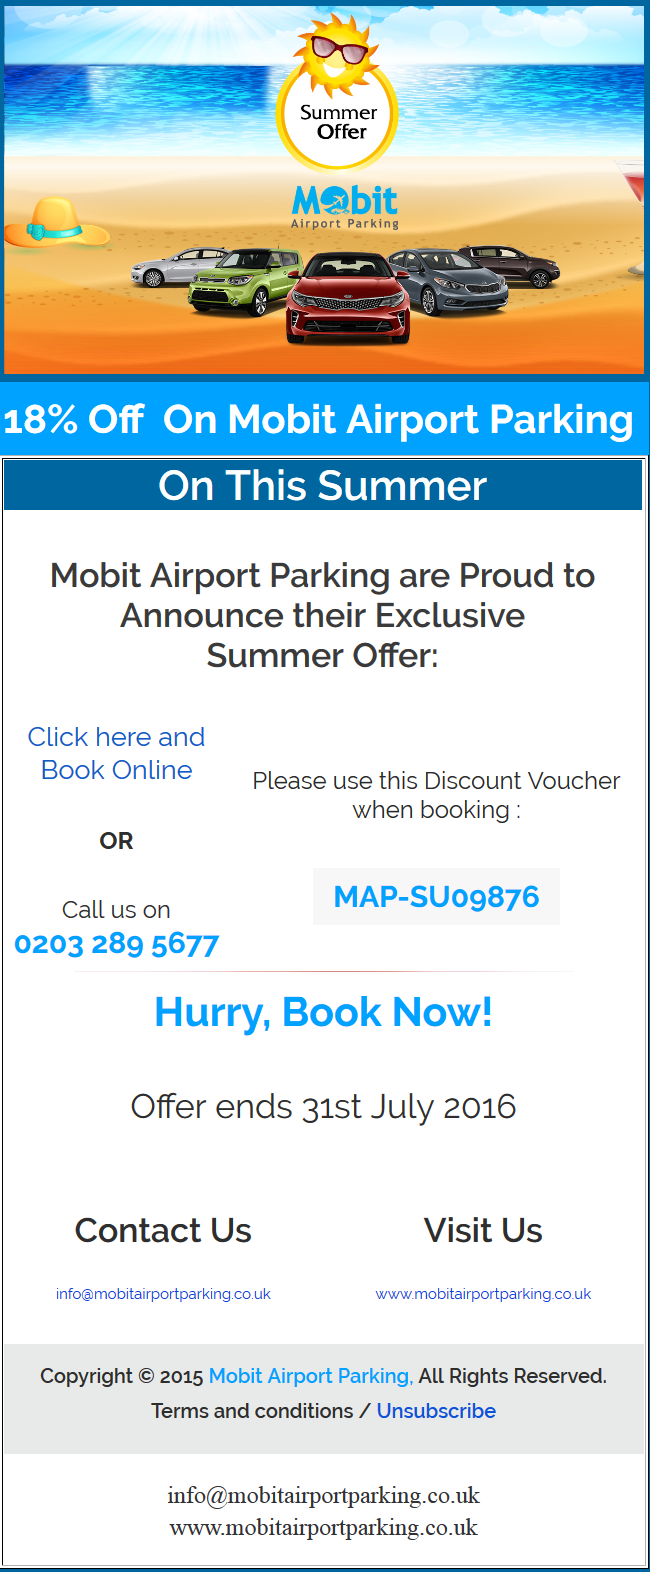 Mobit Airport Parking Brings Another Amazing Offer For The